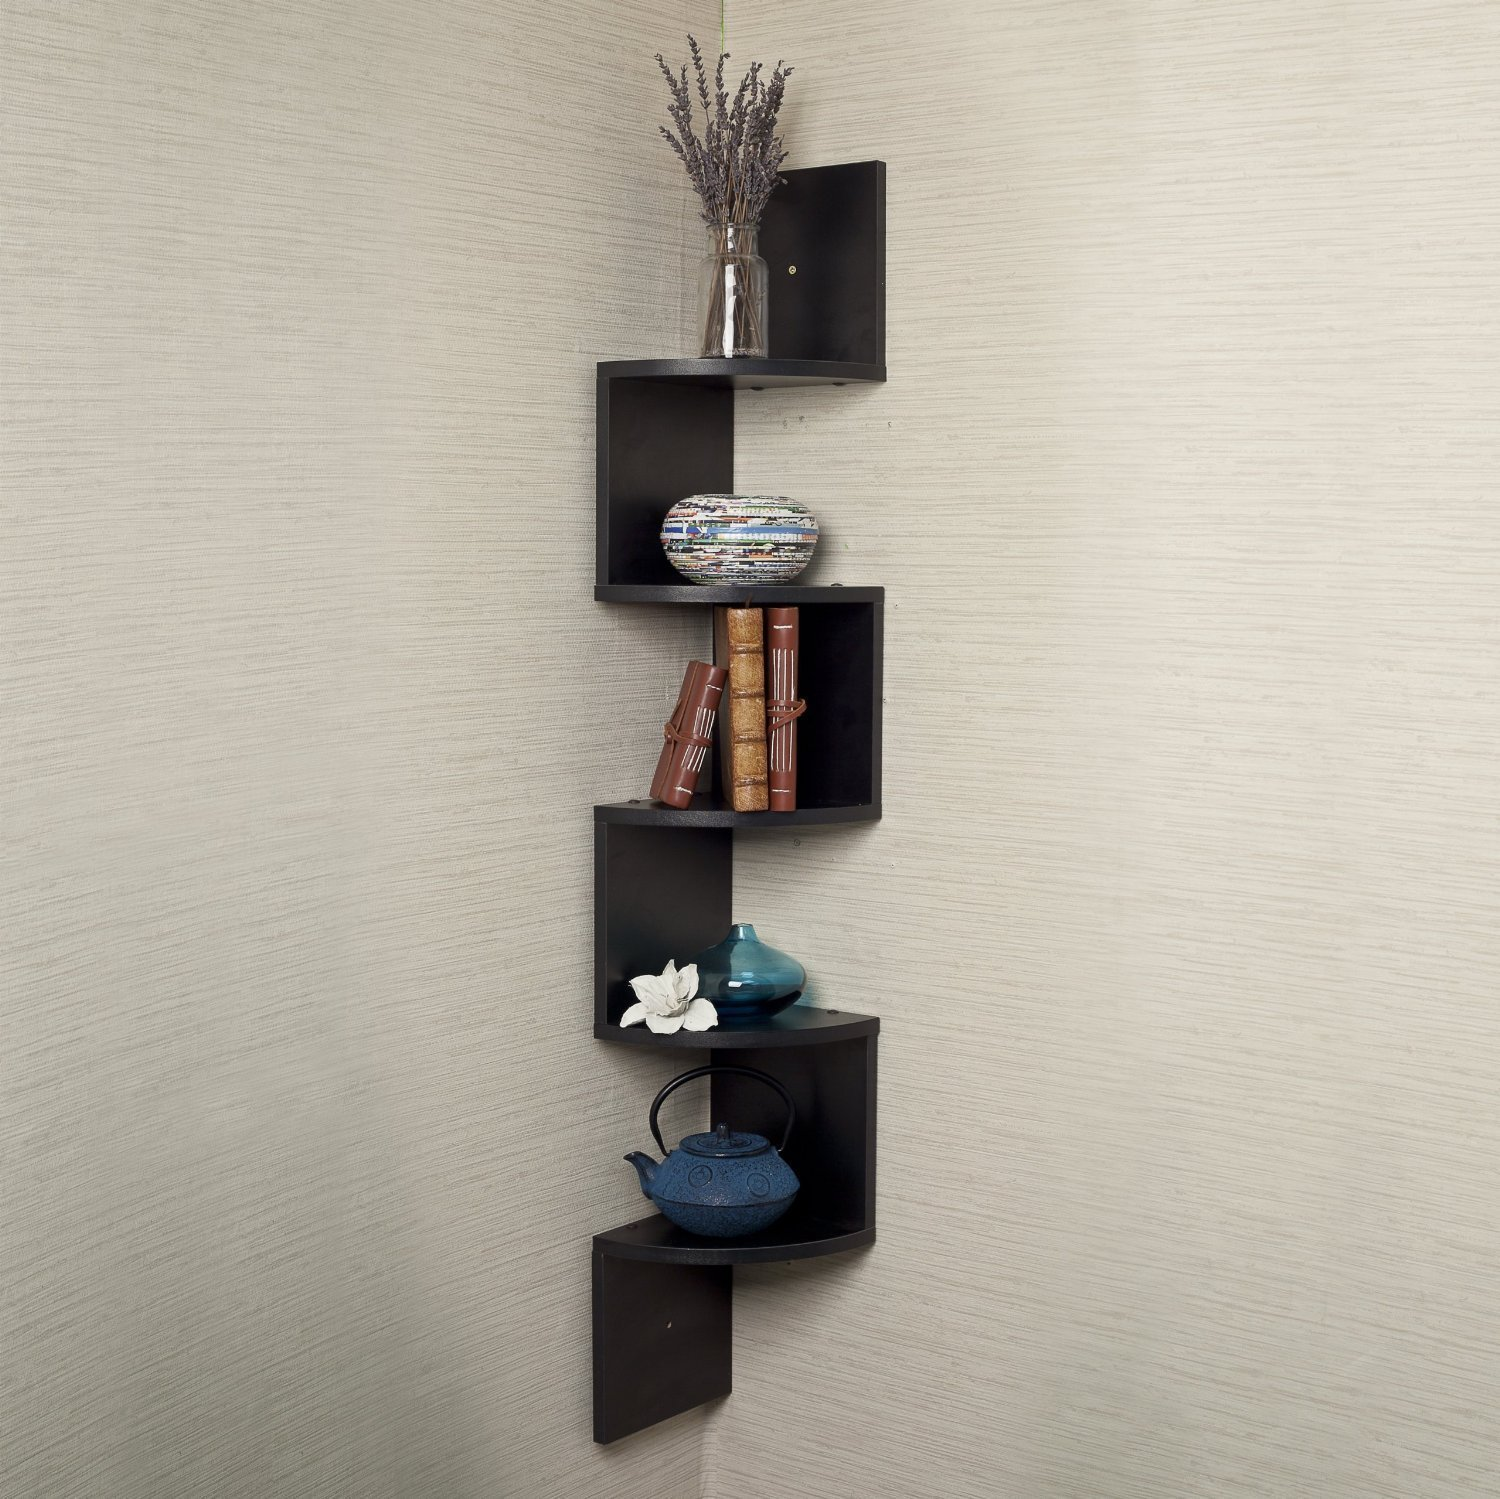 Design Corner Wall Shelves amazon com houseables corner wall book shelf 5 tier black floating side zig zag bookshelf 7 75 x 48 wood storage shel